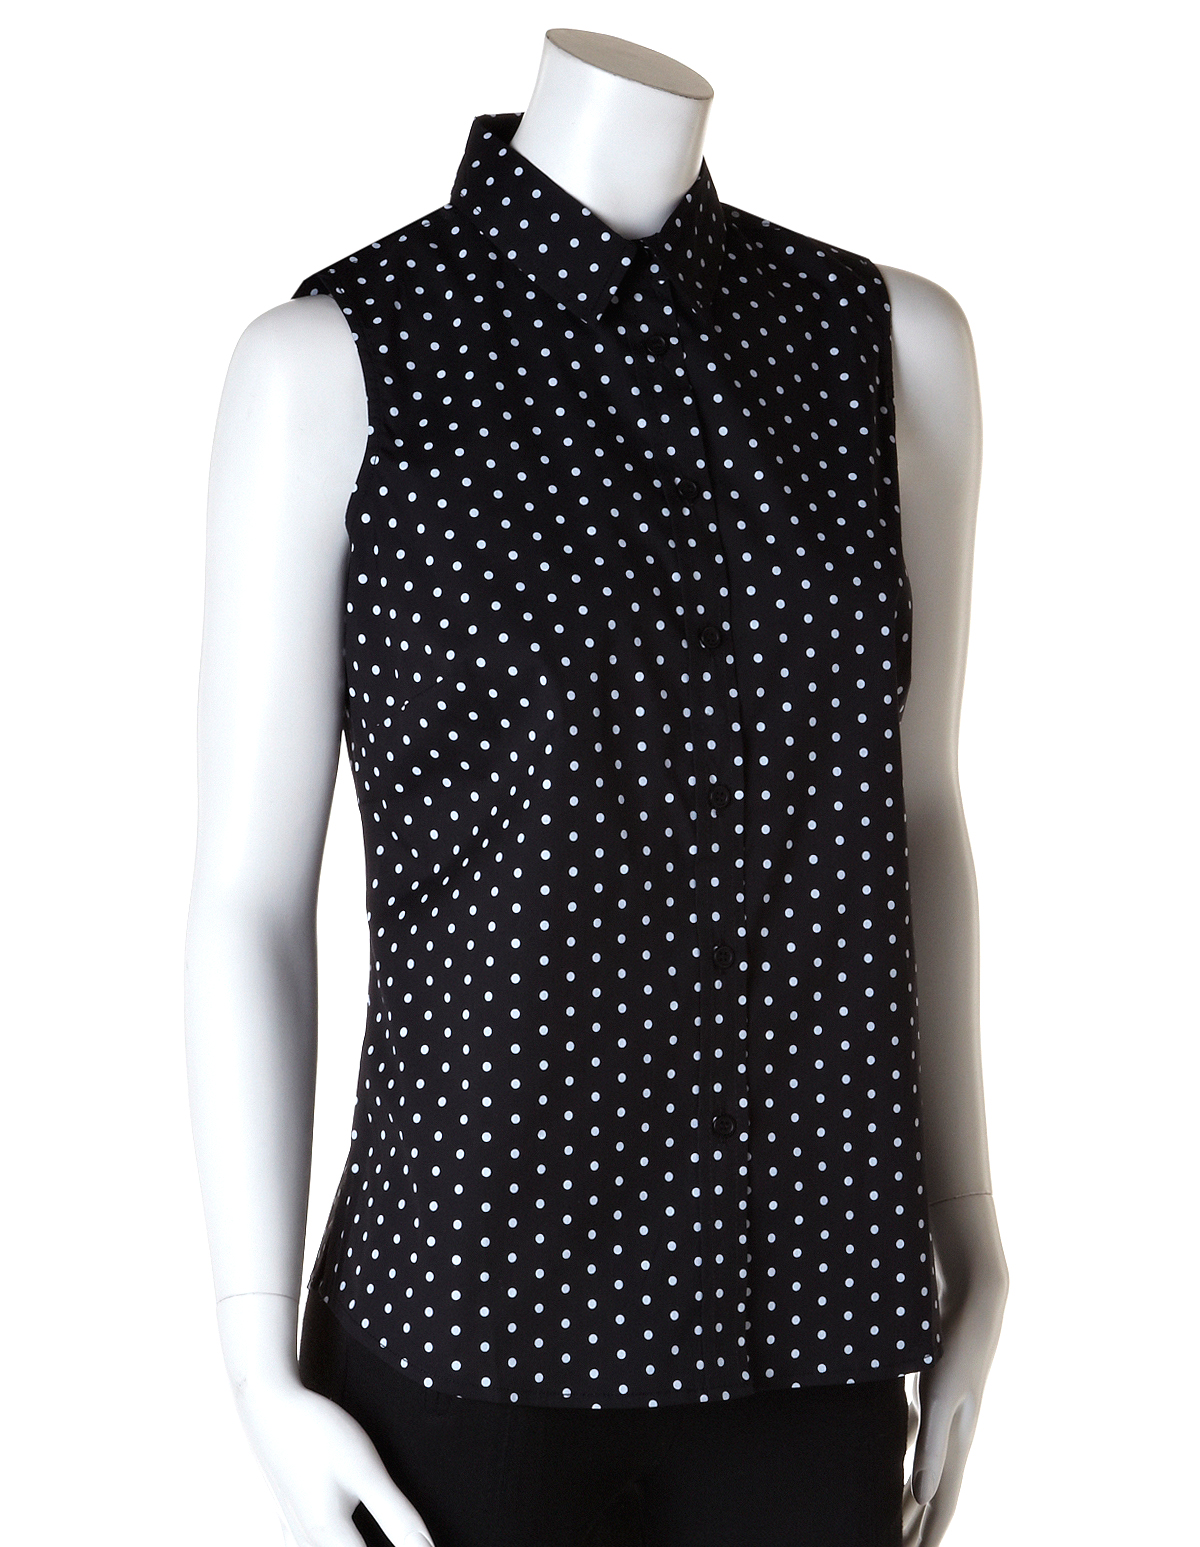 A salaried staple, dames! A charming button up blouse in a deep black, boasting a sleeveless top, back yoke, and darting for feminine form with a classic collar. Crafted in a sturdy woven cotton blend, it's the consummate canvas. You've got this!Available in sizes S-L while supplies last.